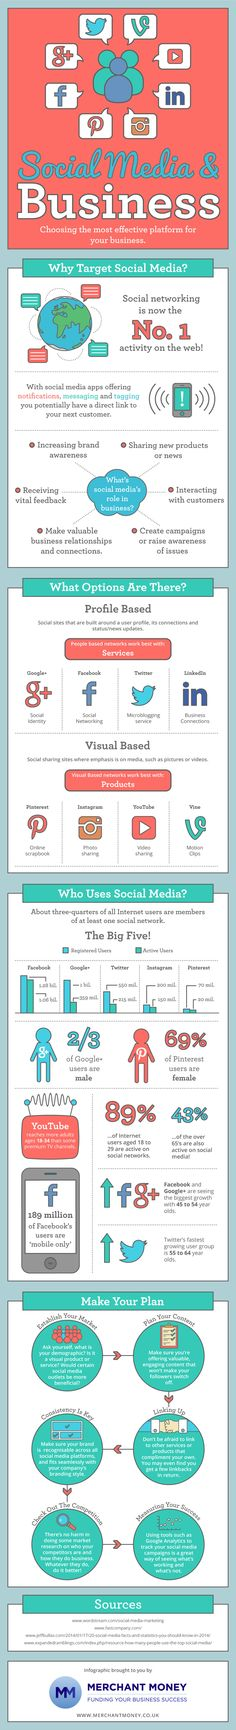 How to Choose The Most Effective Social Media Platform For Your Business - #infographic #Socialmedia #SMM